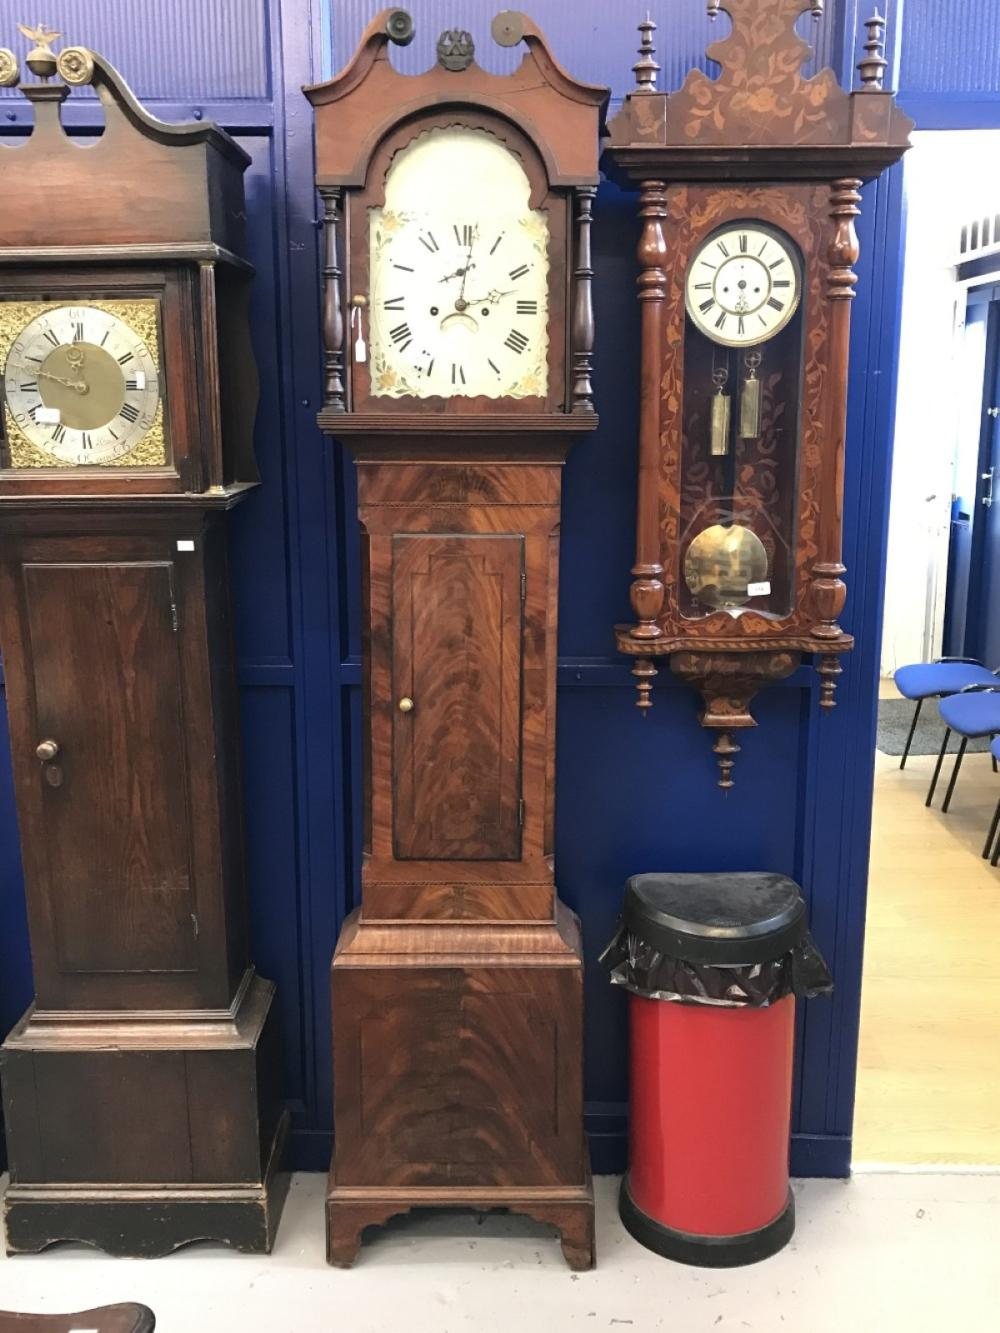 Clock: 19th cent. Flame mahogany longcase clock. Painted arch dial, floral spandrels, dome top with